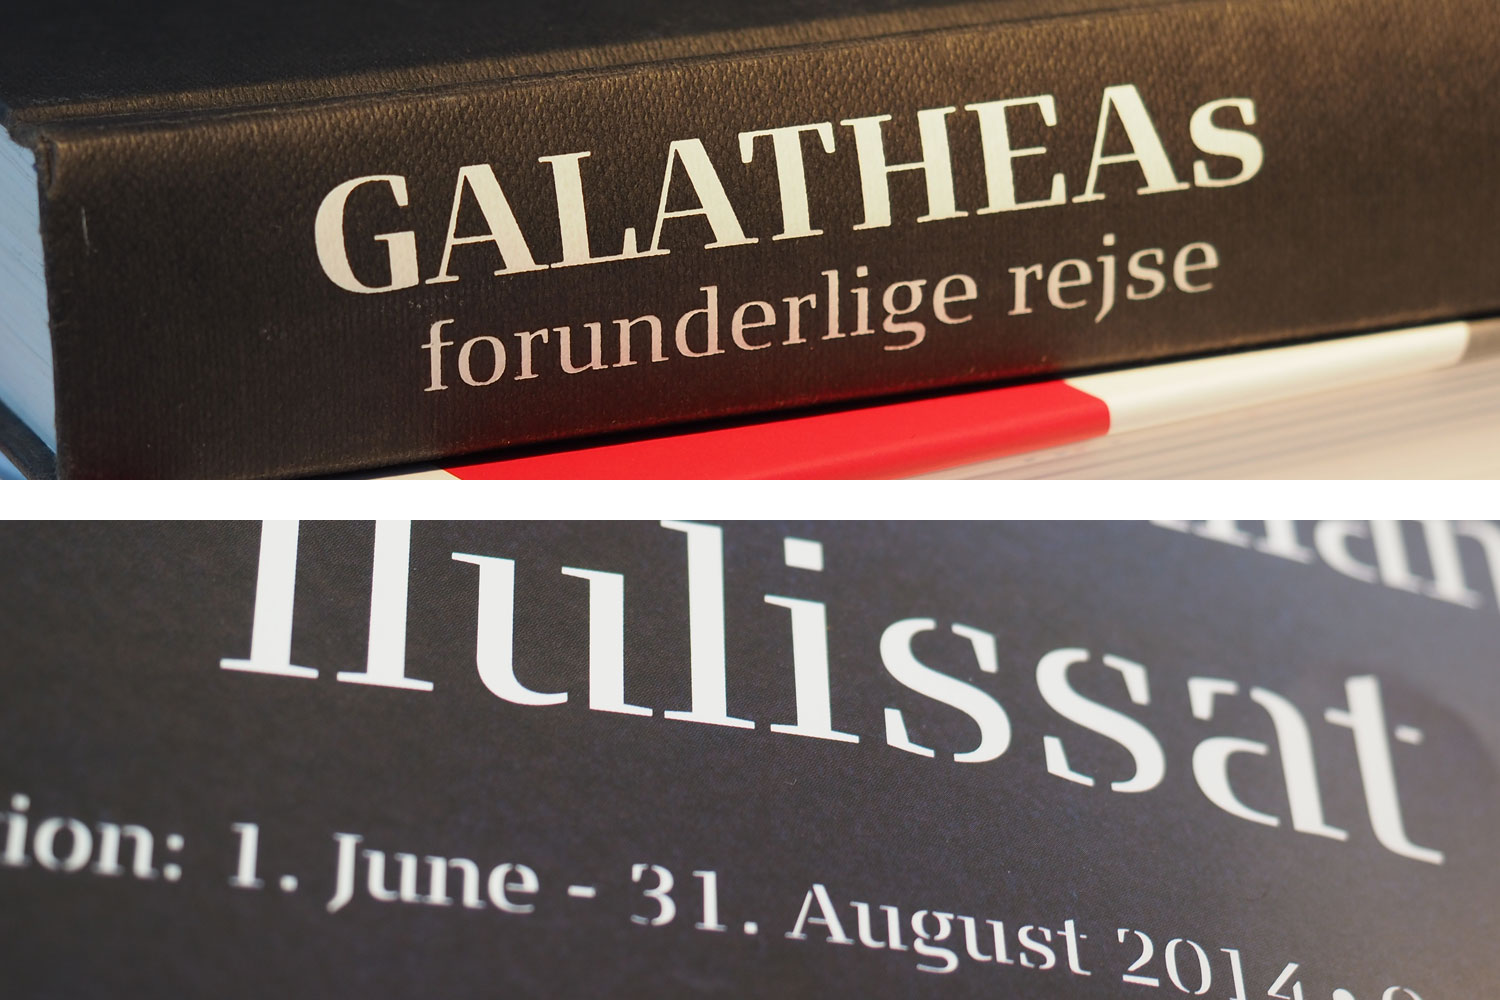 FF Signa Serif & Signa Serif Stencil in use on different projects